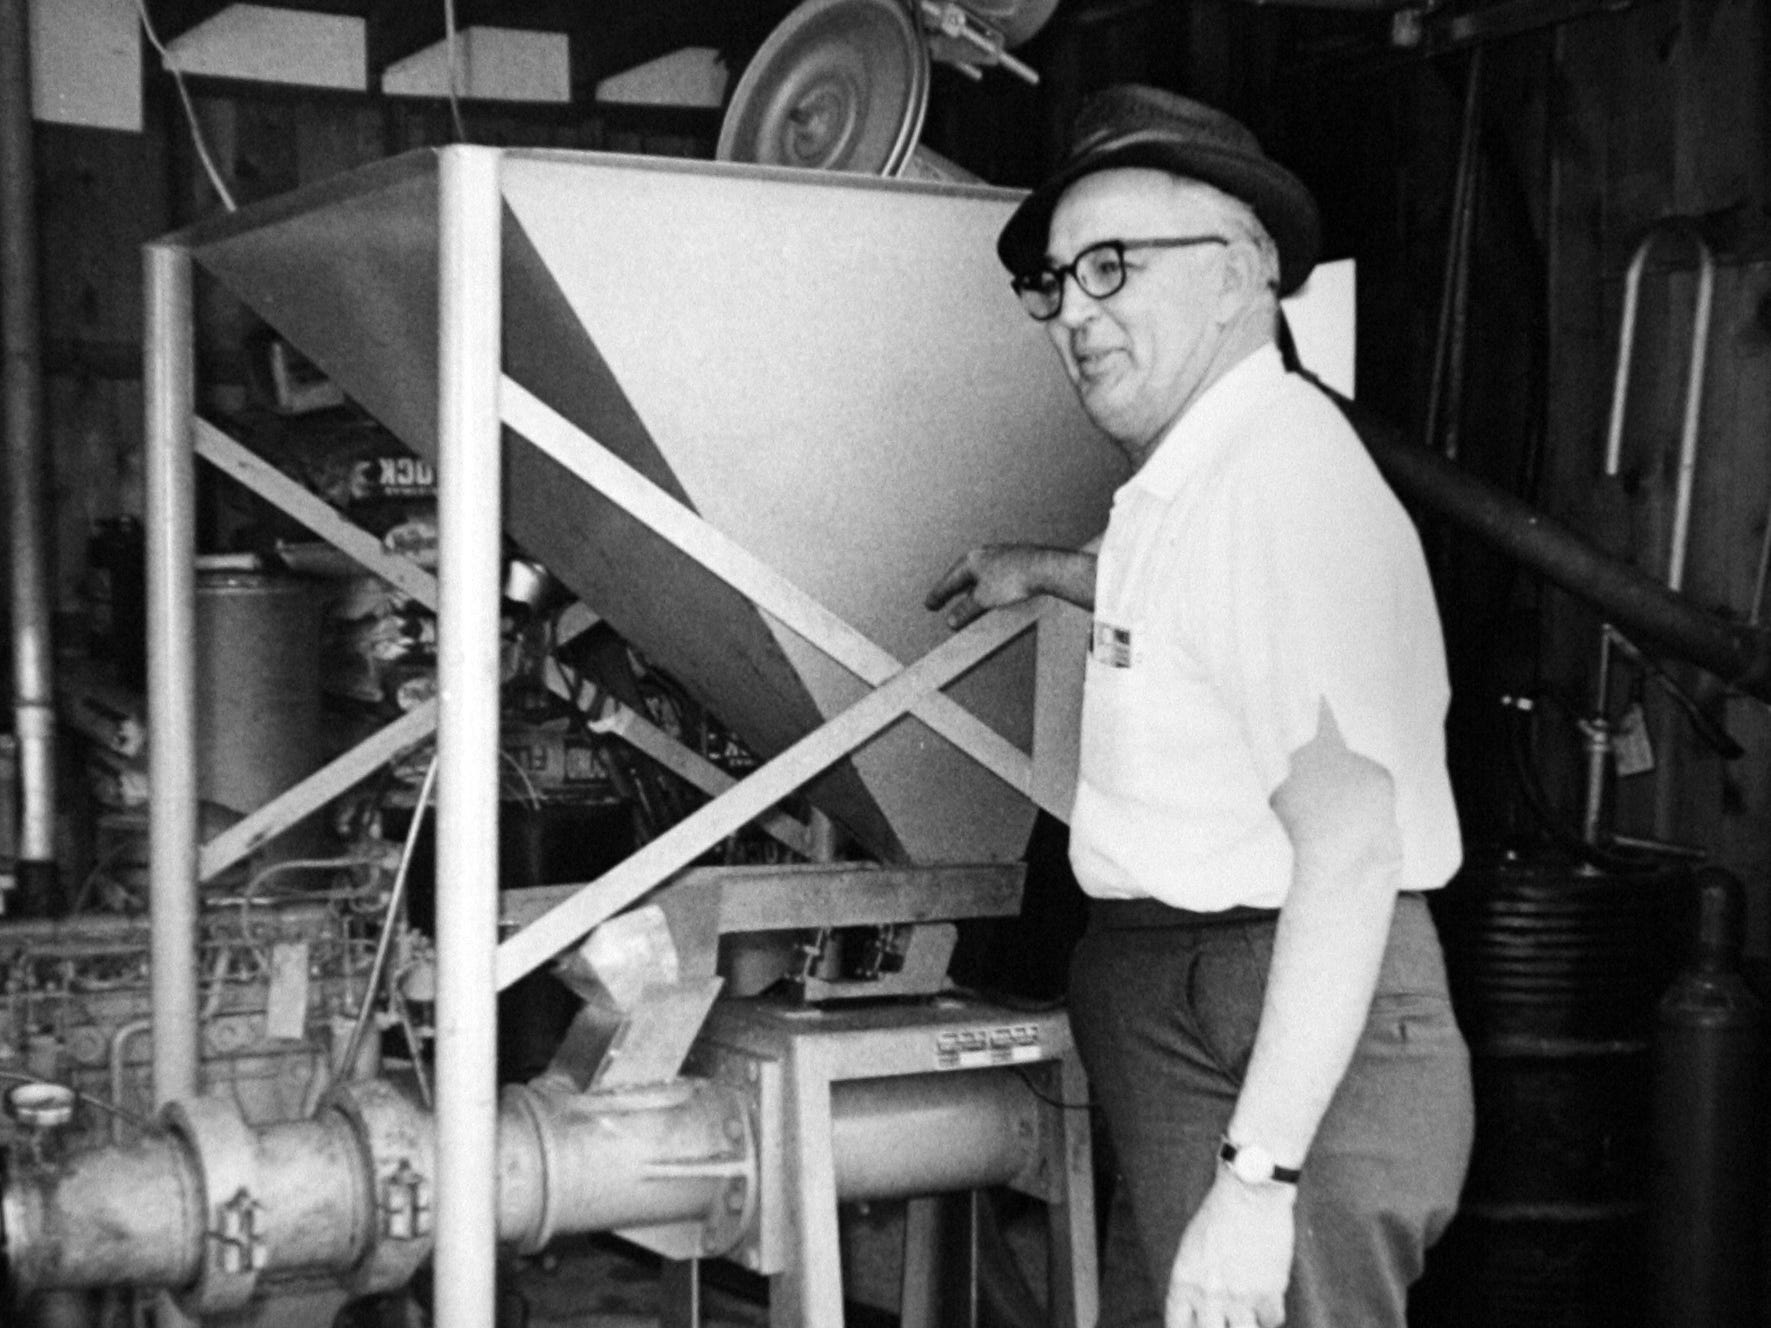 Wayne Fox, of Des Moines, is pictured in 1969 next to the soybean extruder he invented.